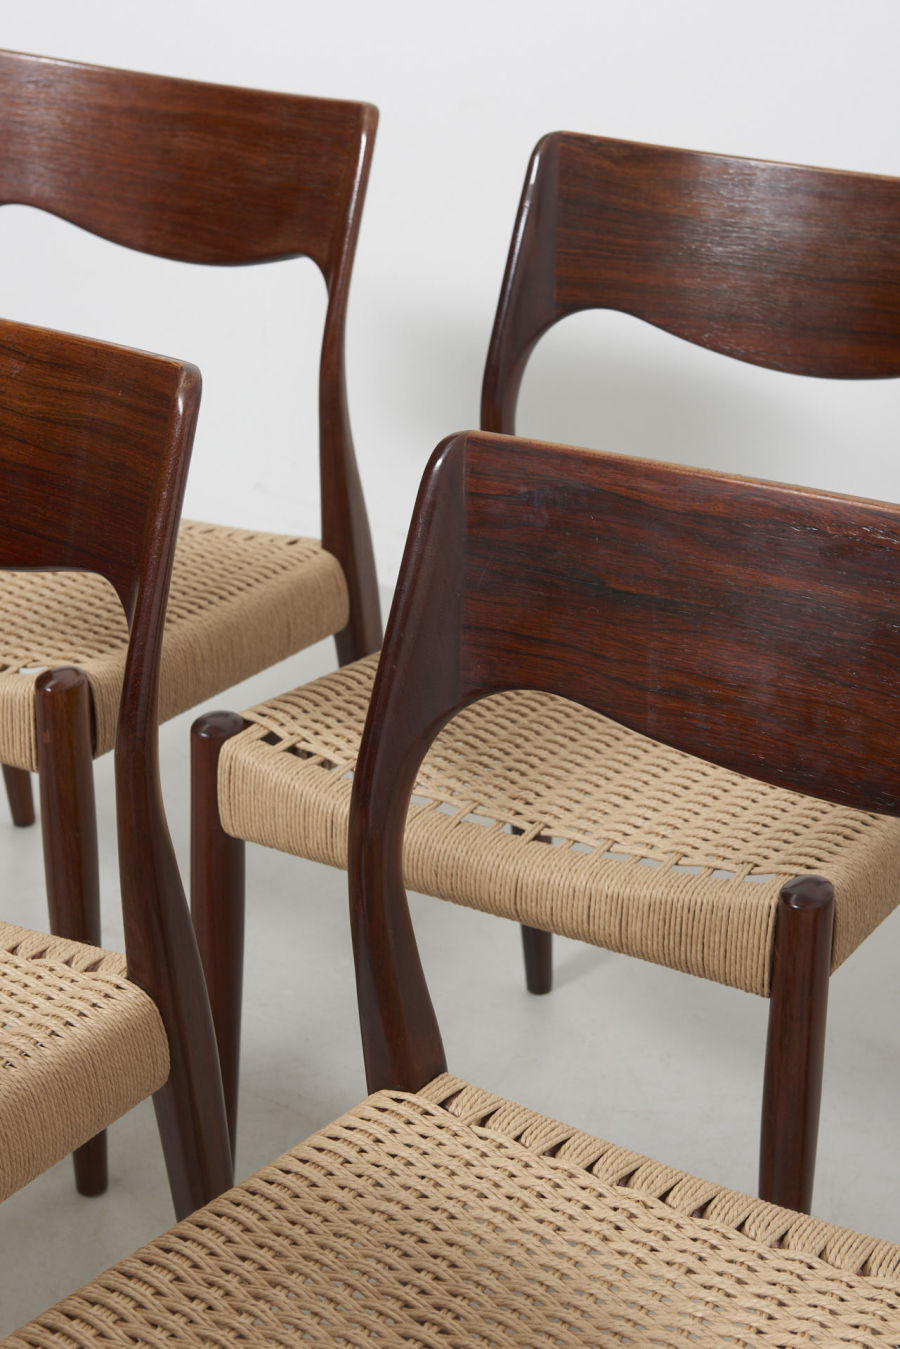 modestfurniture-vintage-2471-rosewood-dining-chairs-paper-cord08